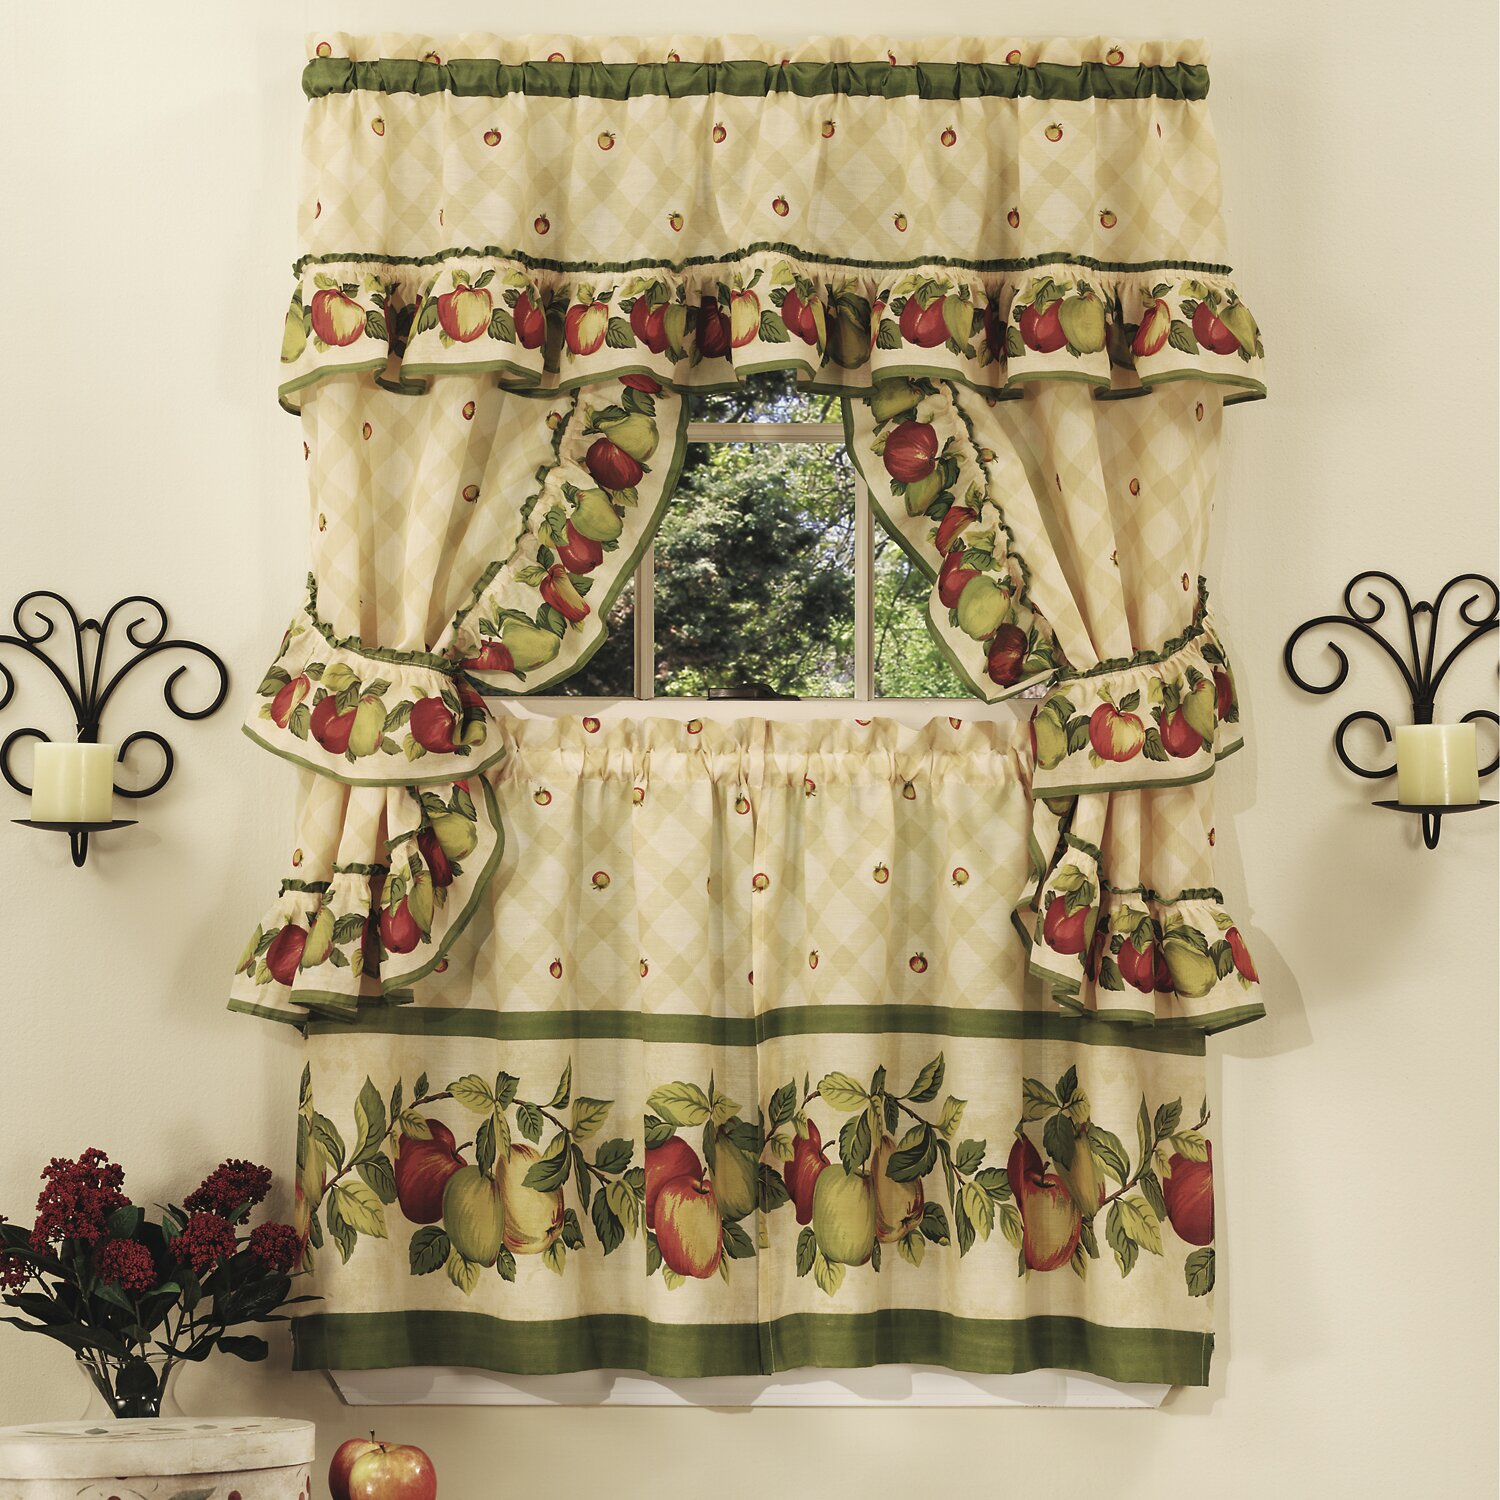 Apple orchard cottage kitchen curtain set wayfair for Home interiors apple orchard collection